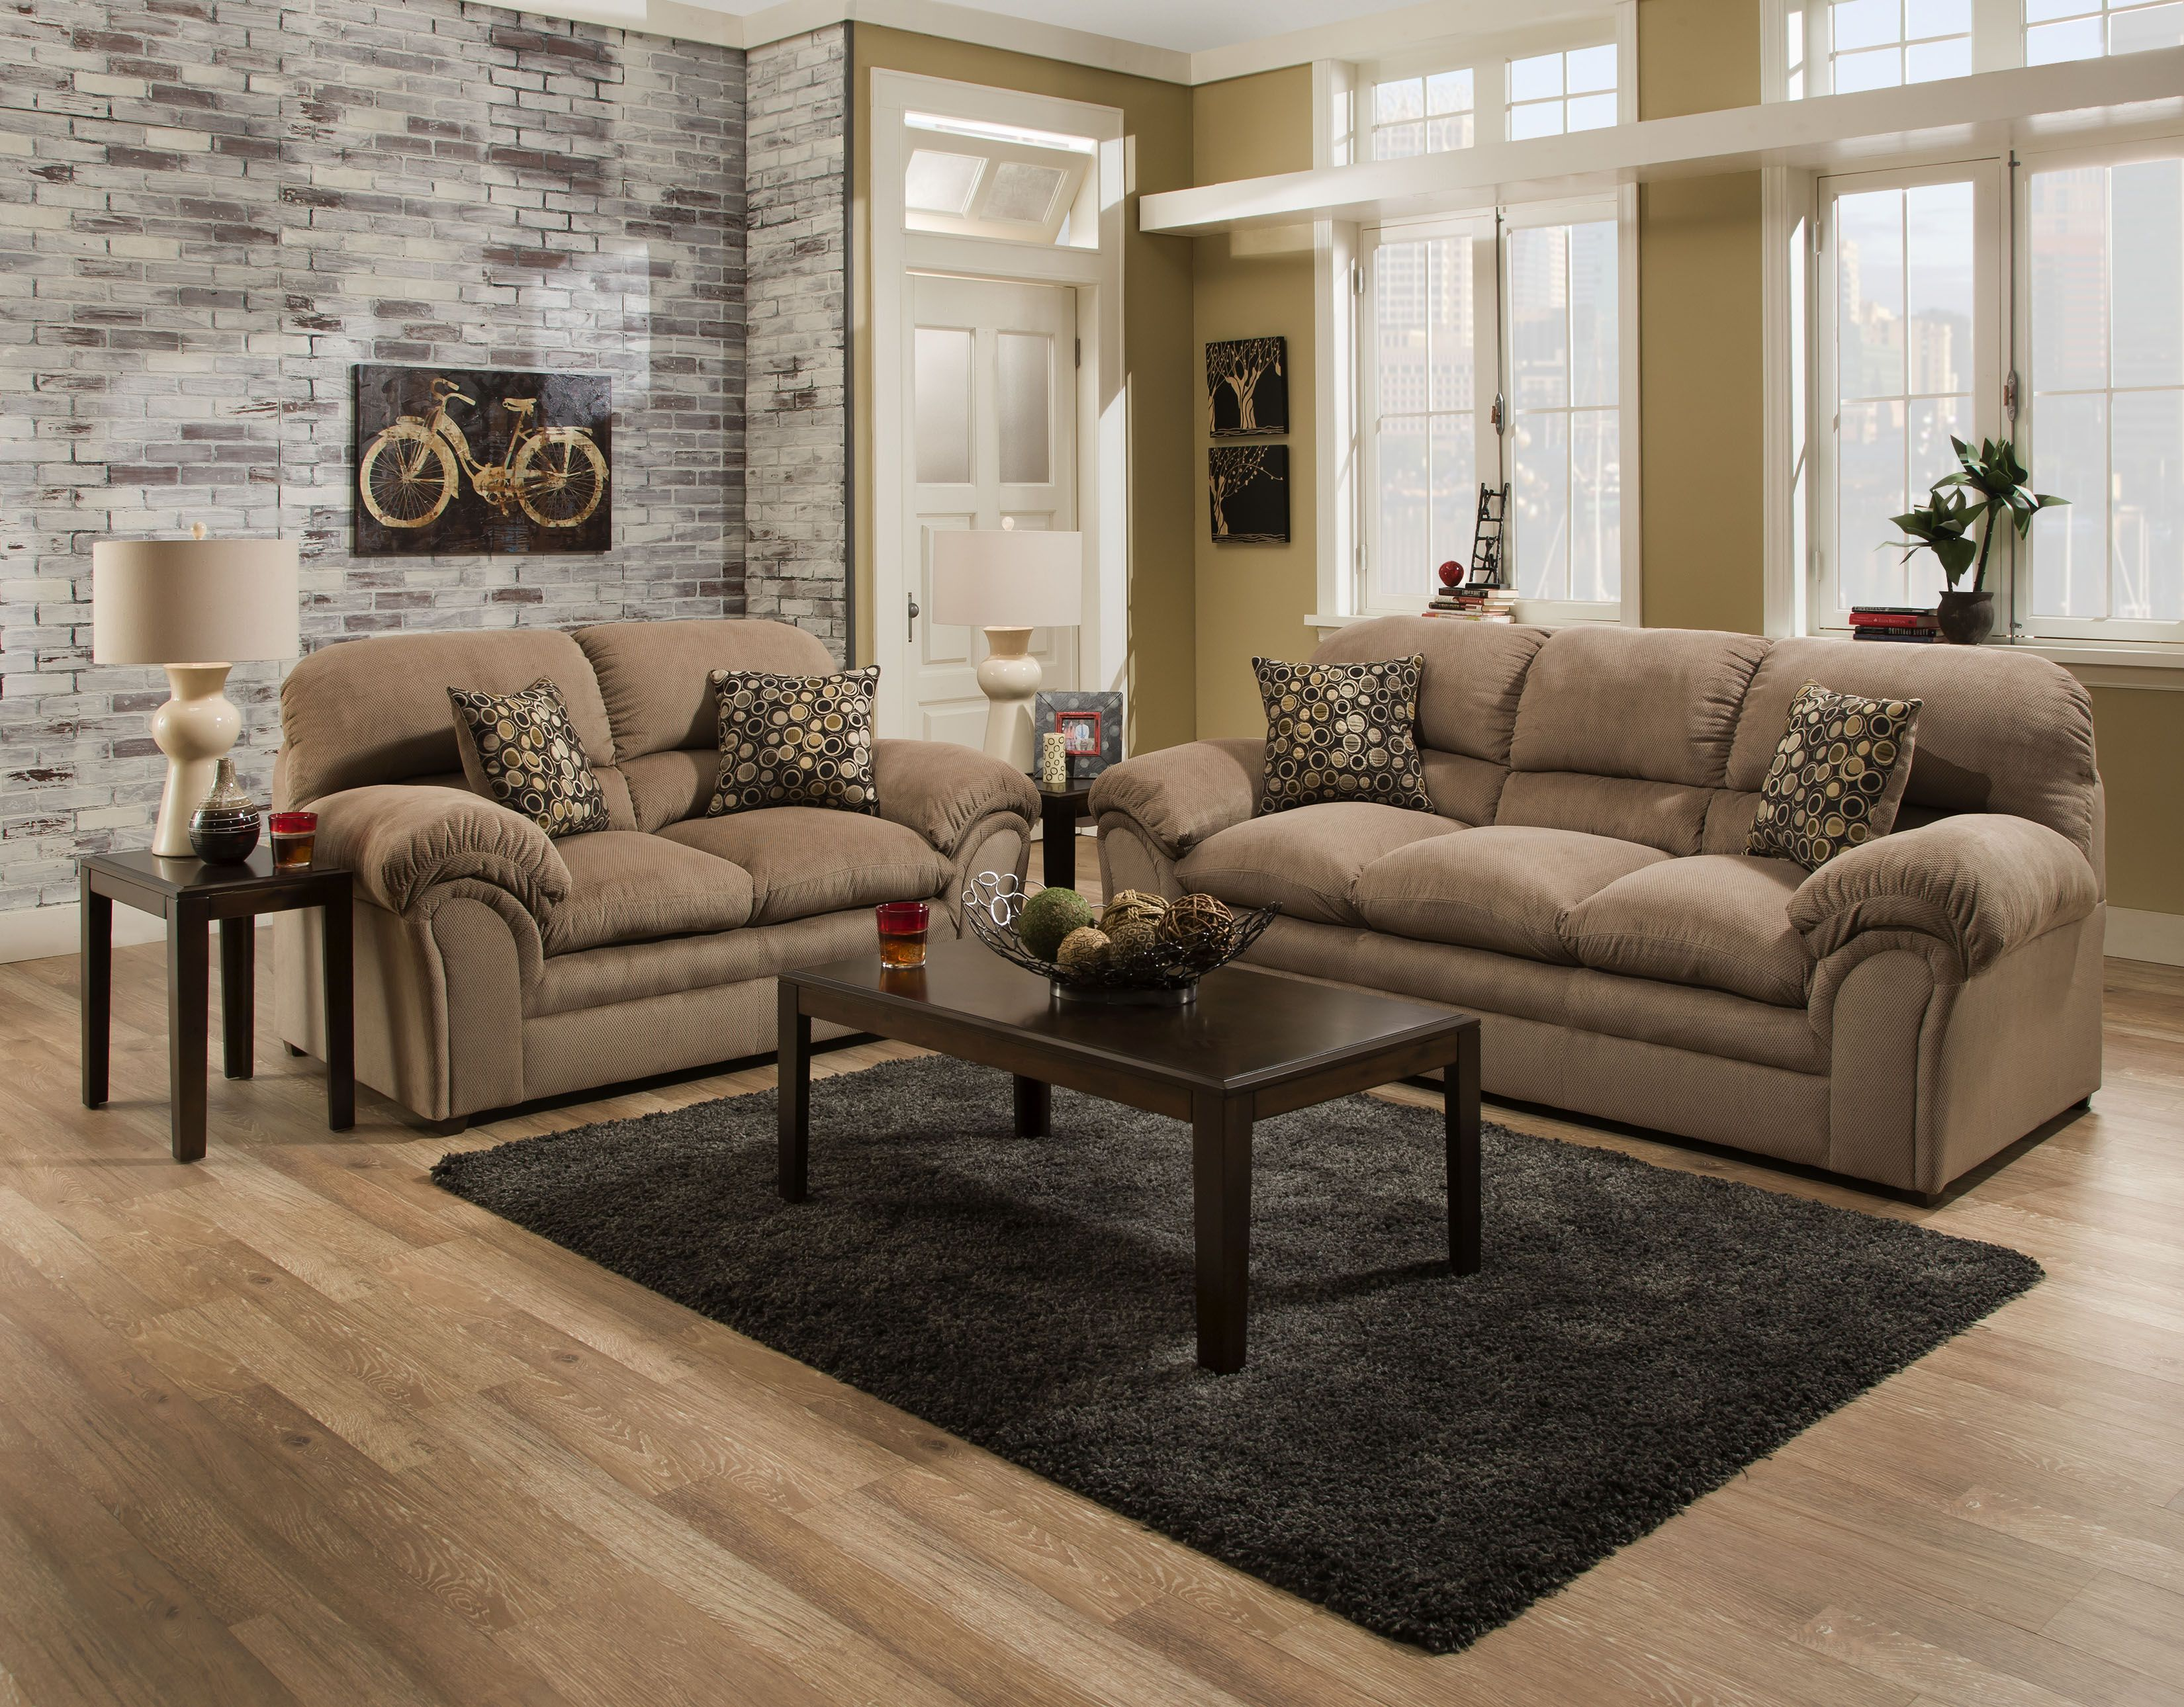 38+ Beige couch living room set ideas